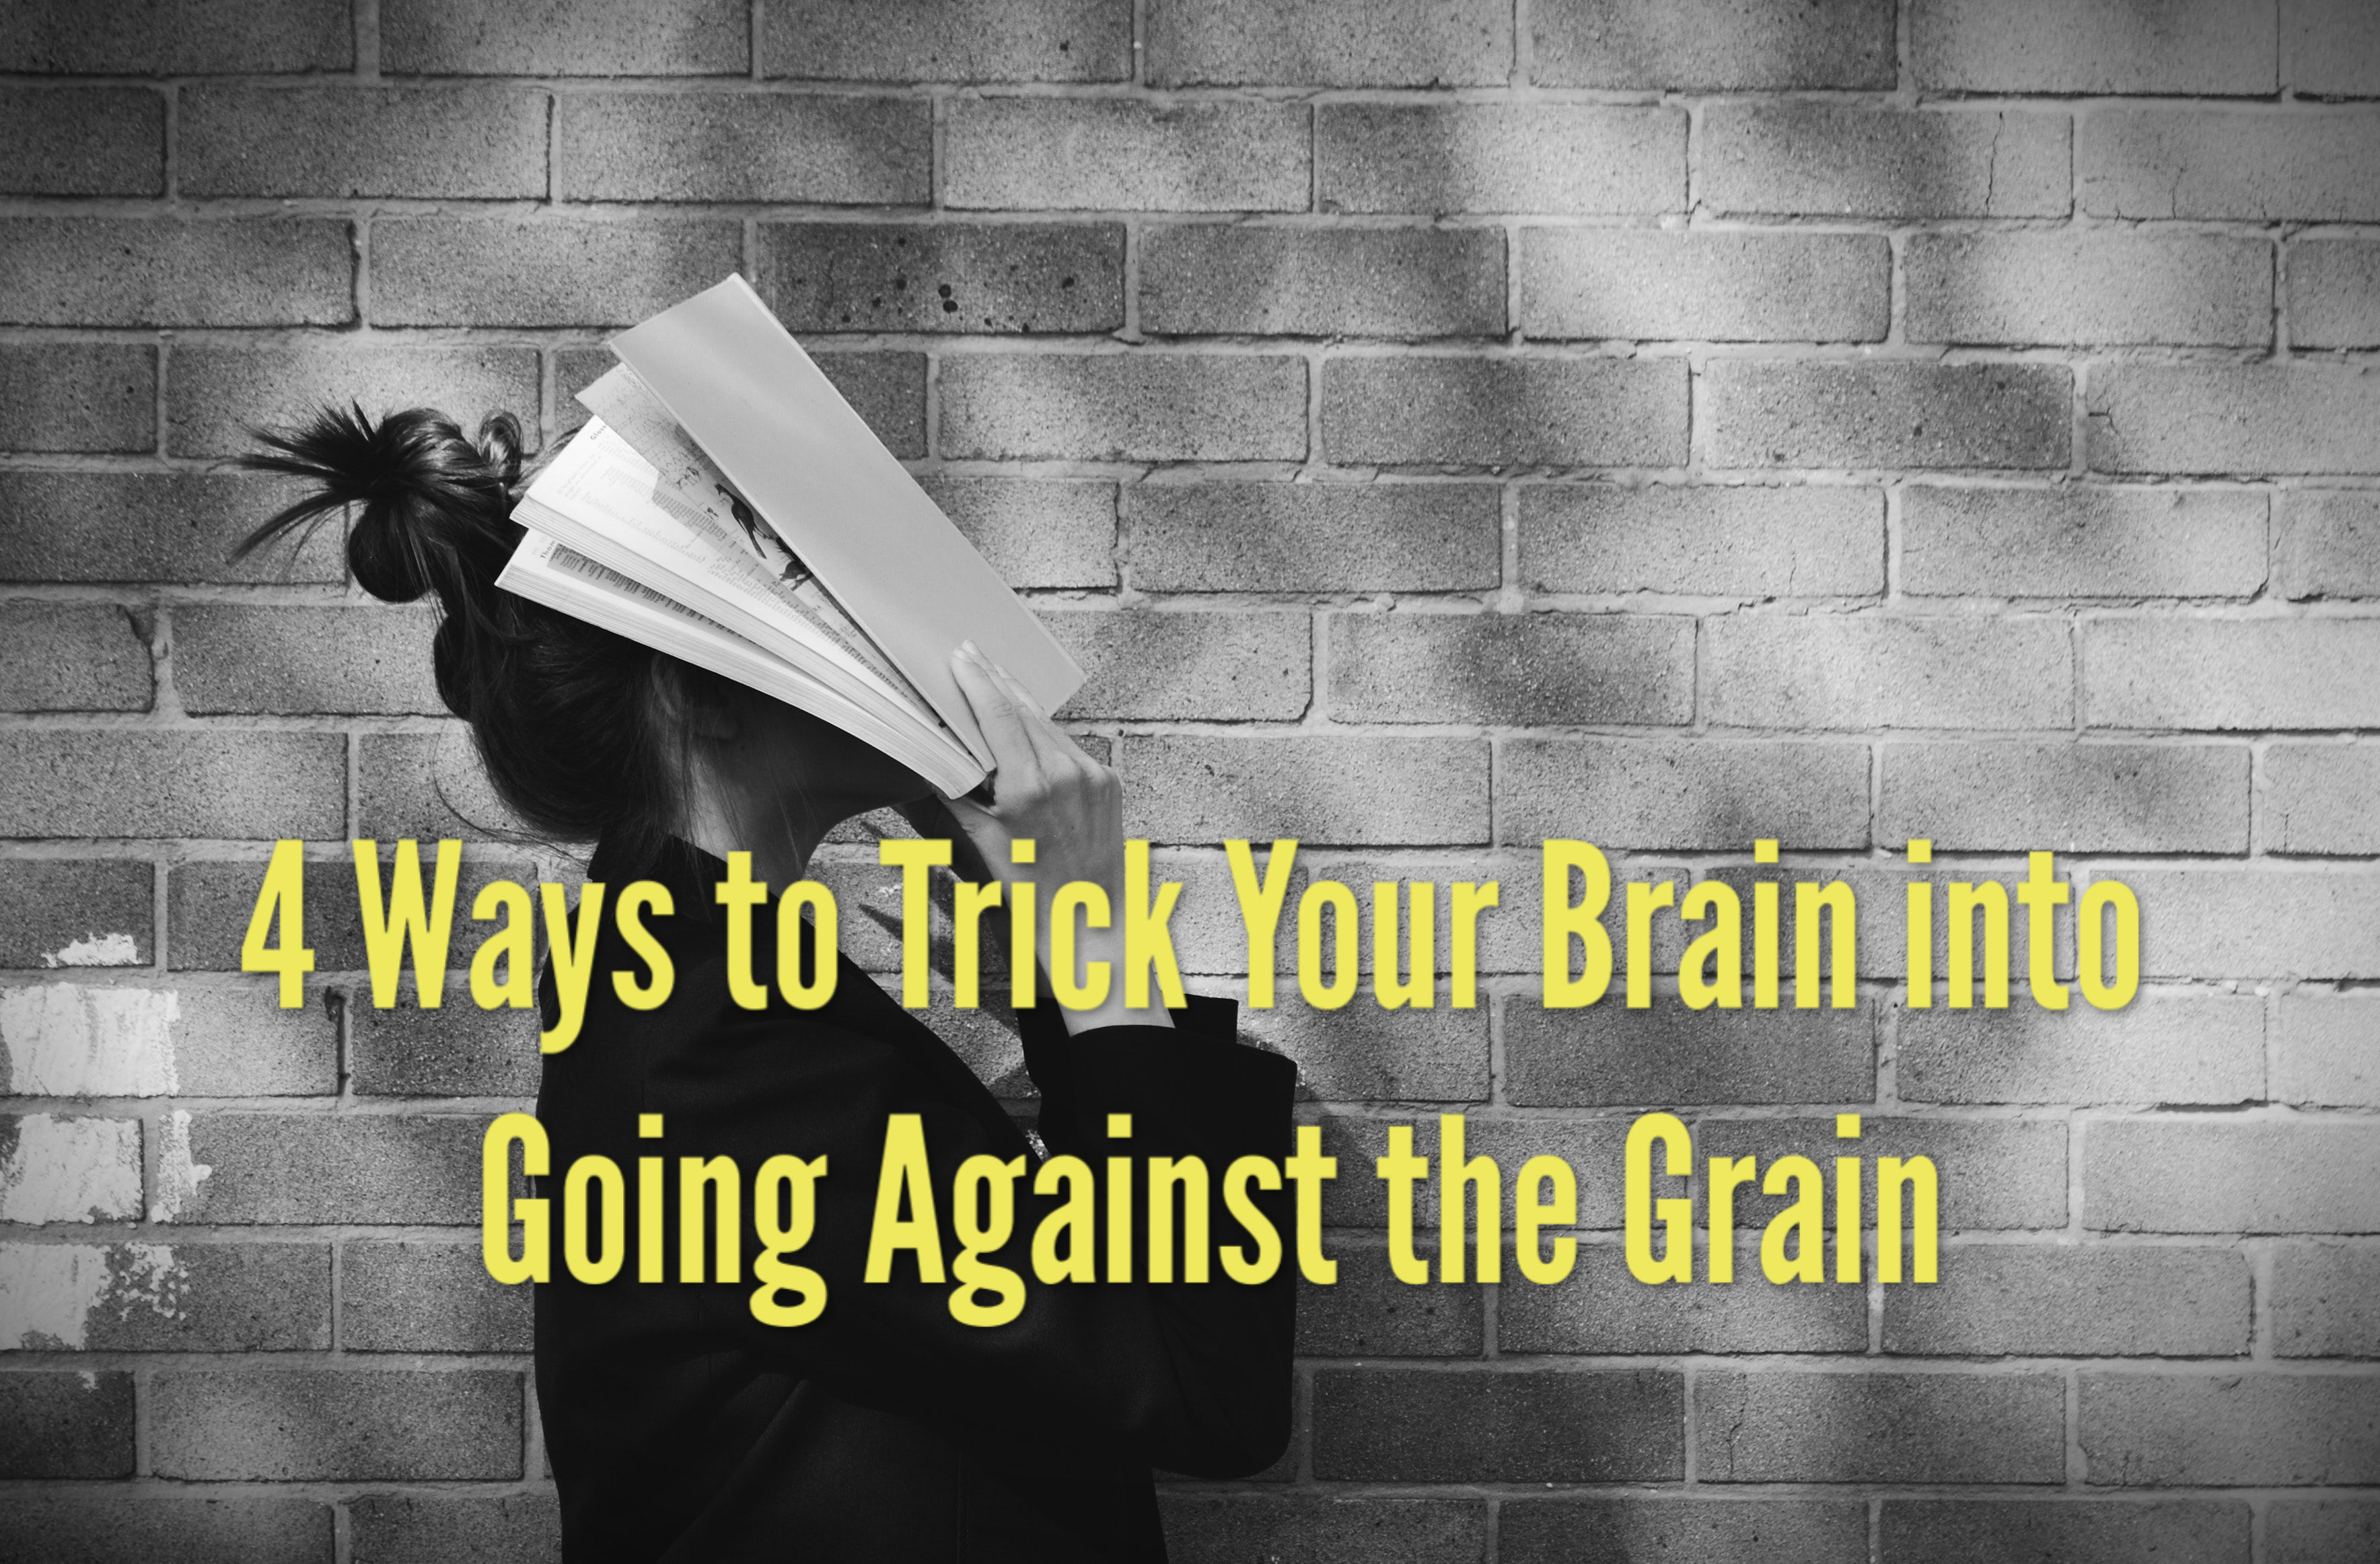 4 Ways to Trick Your Brain into Going Against the Grain